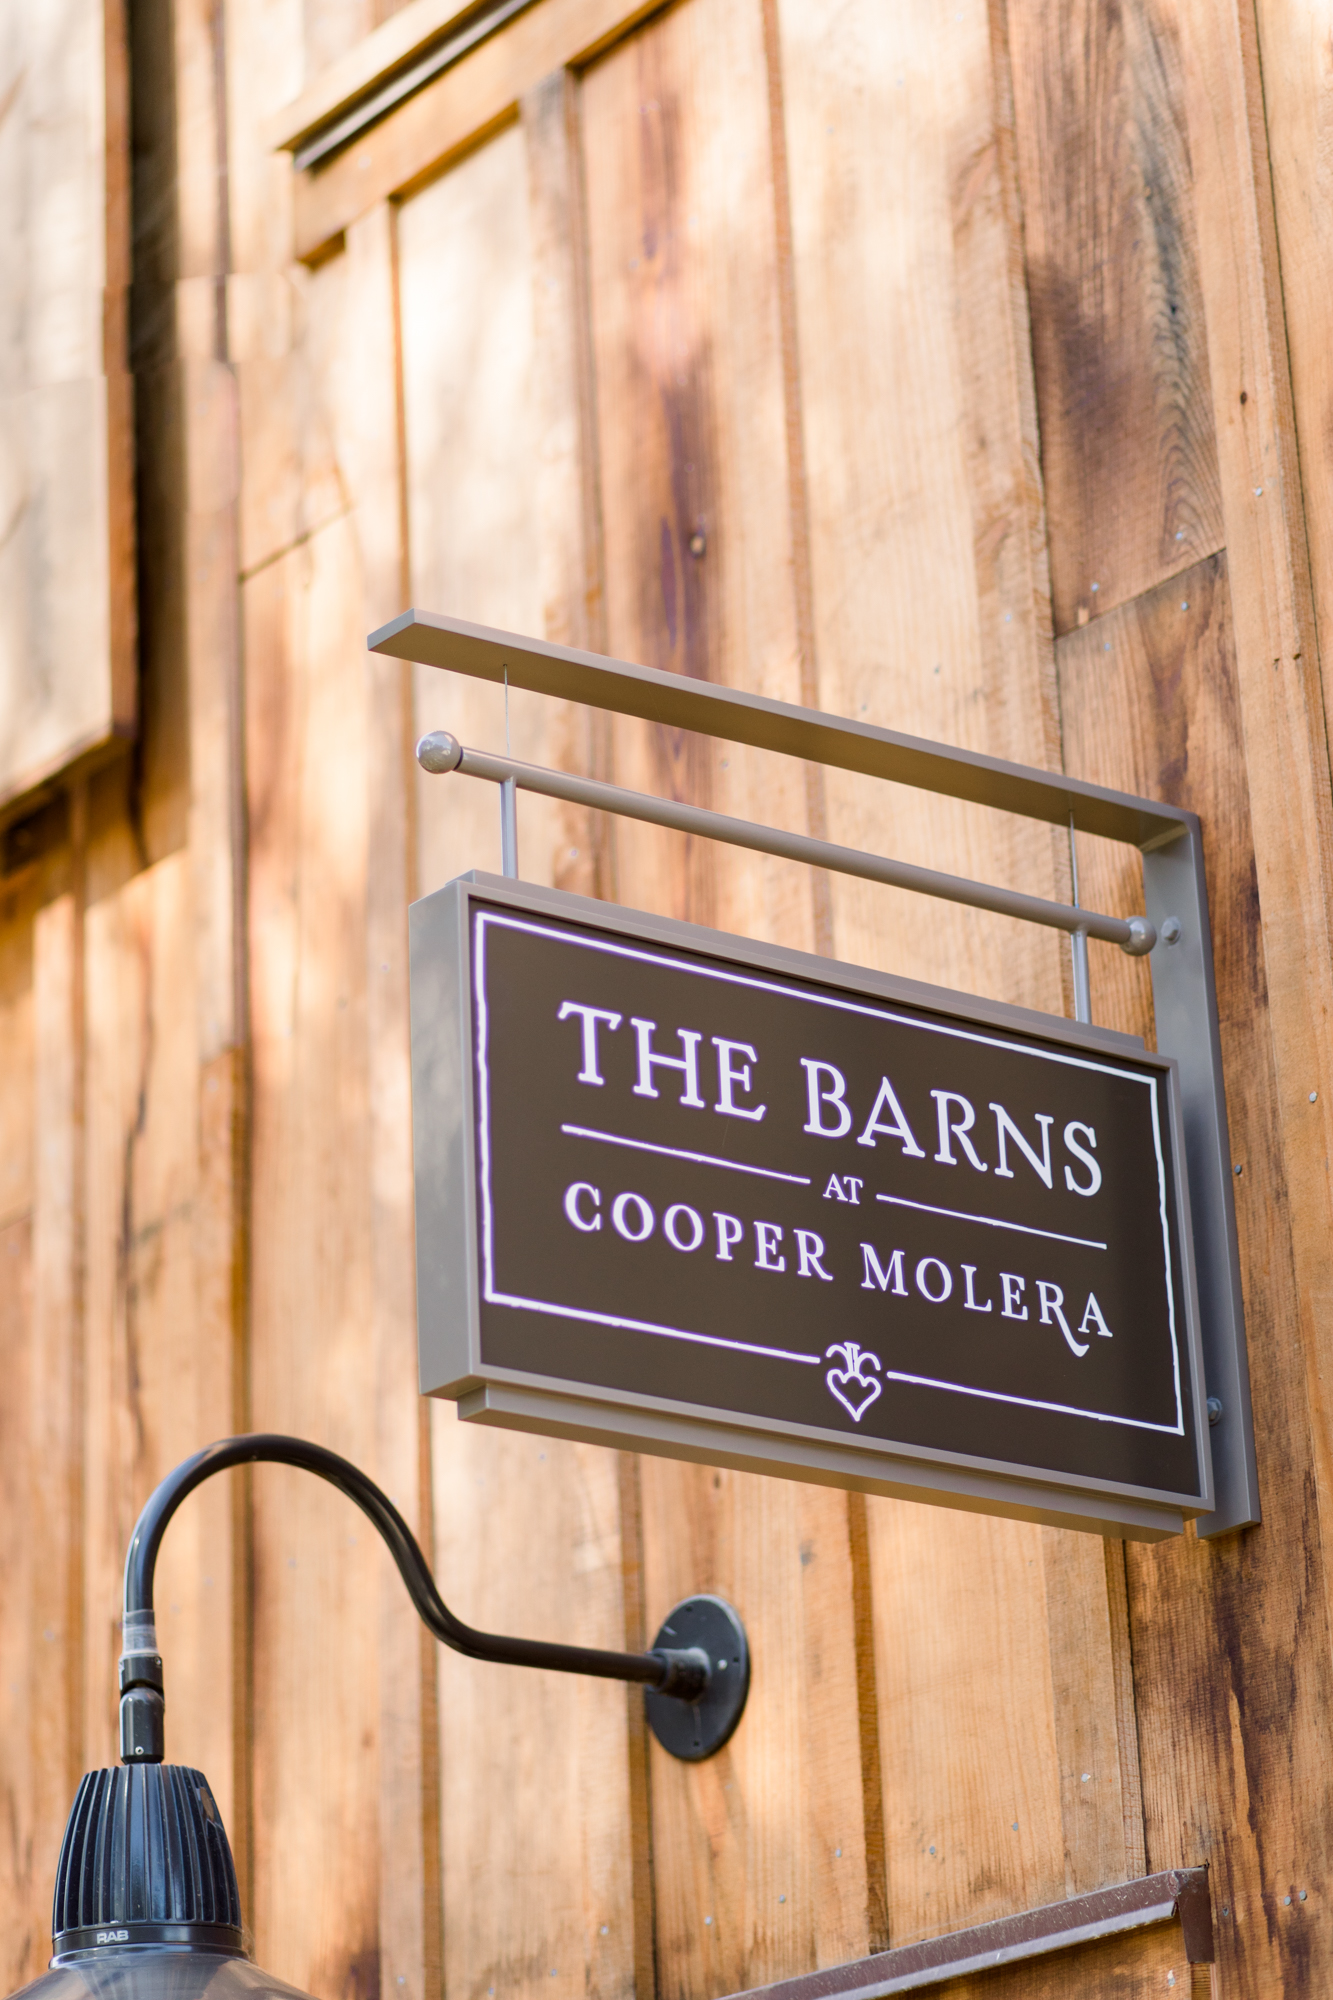 Signage at The Barns Event Center in Monterey